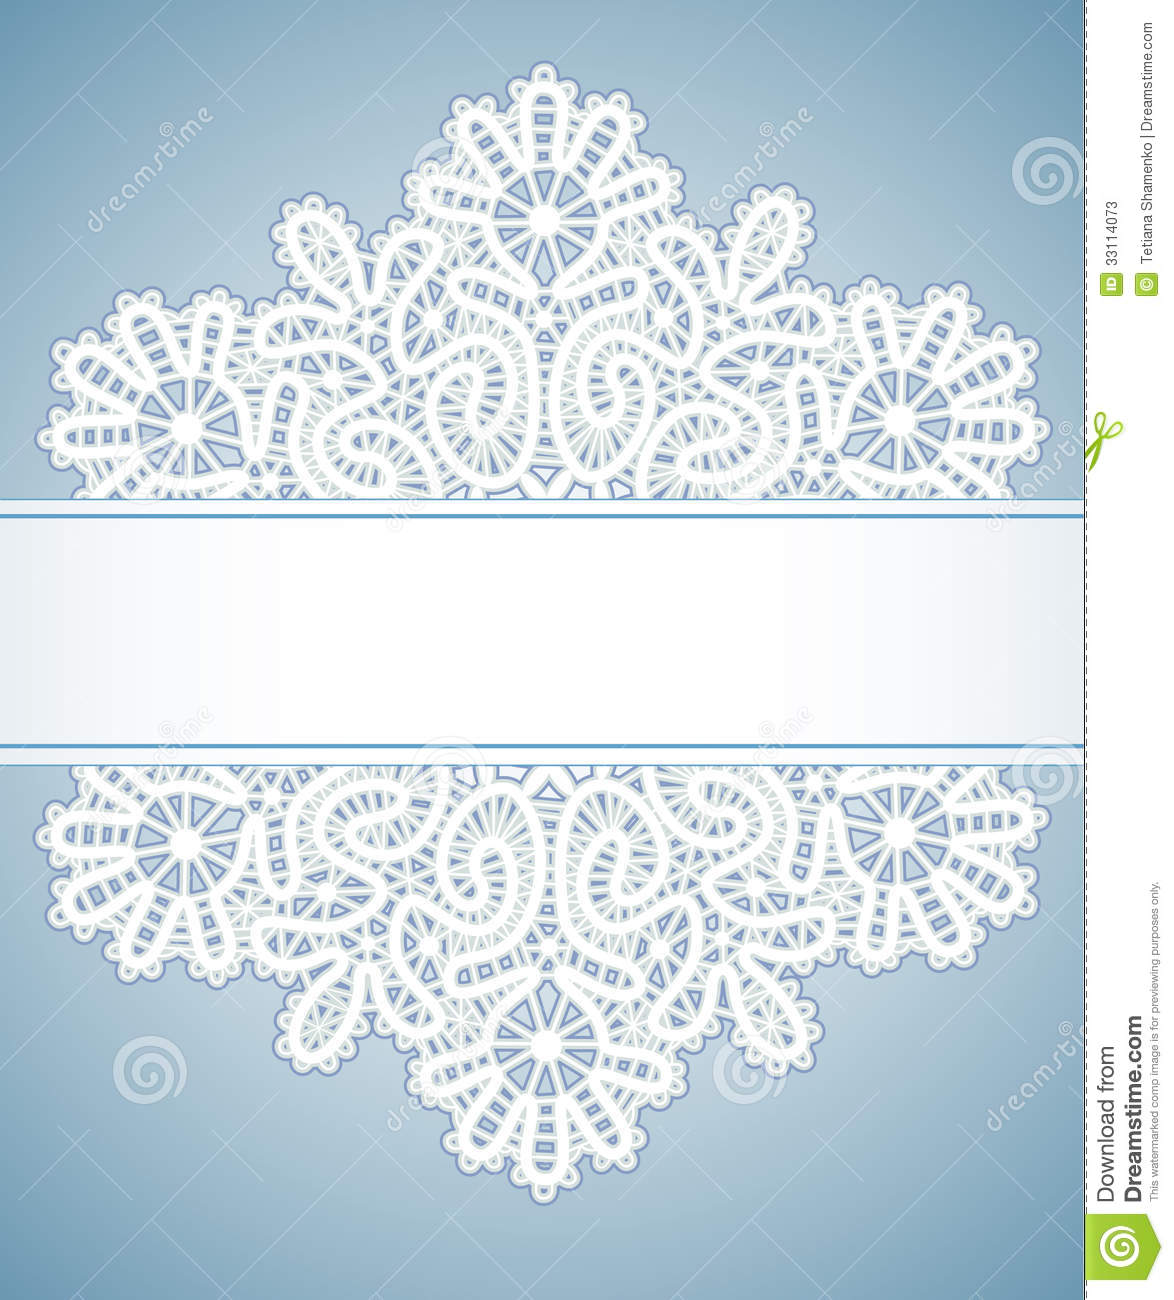 Template Frame Design For Christmas Card Stock Photos - Image ...